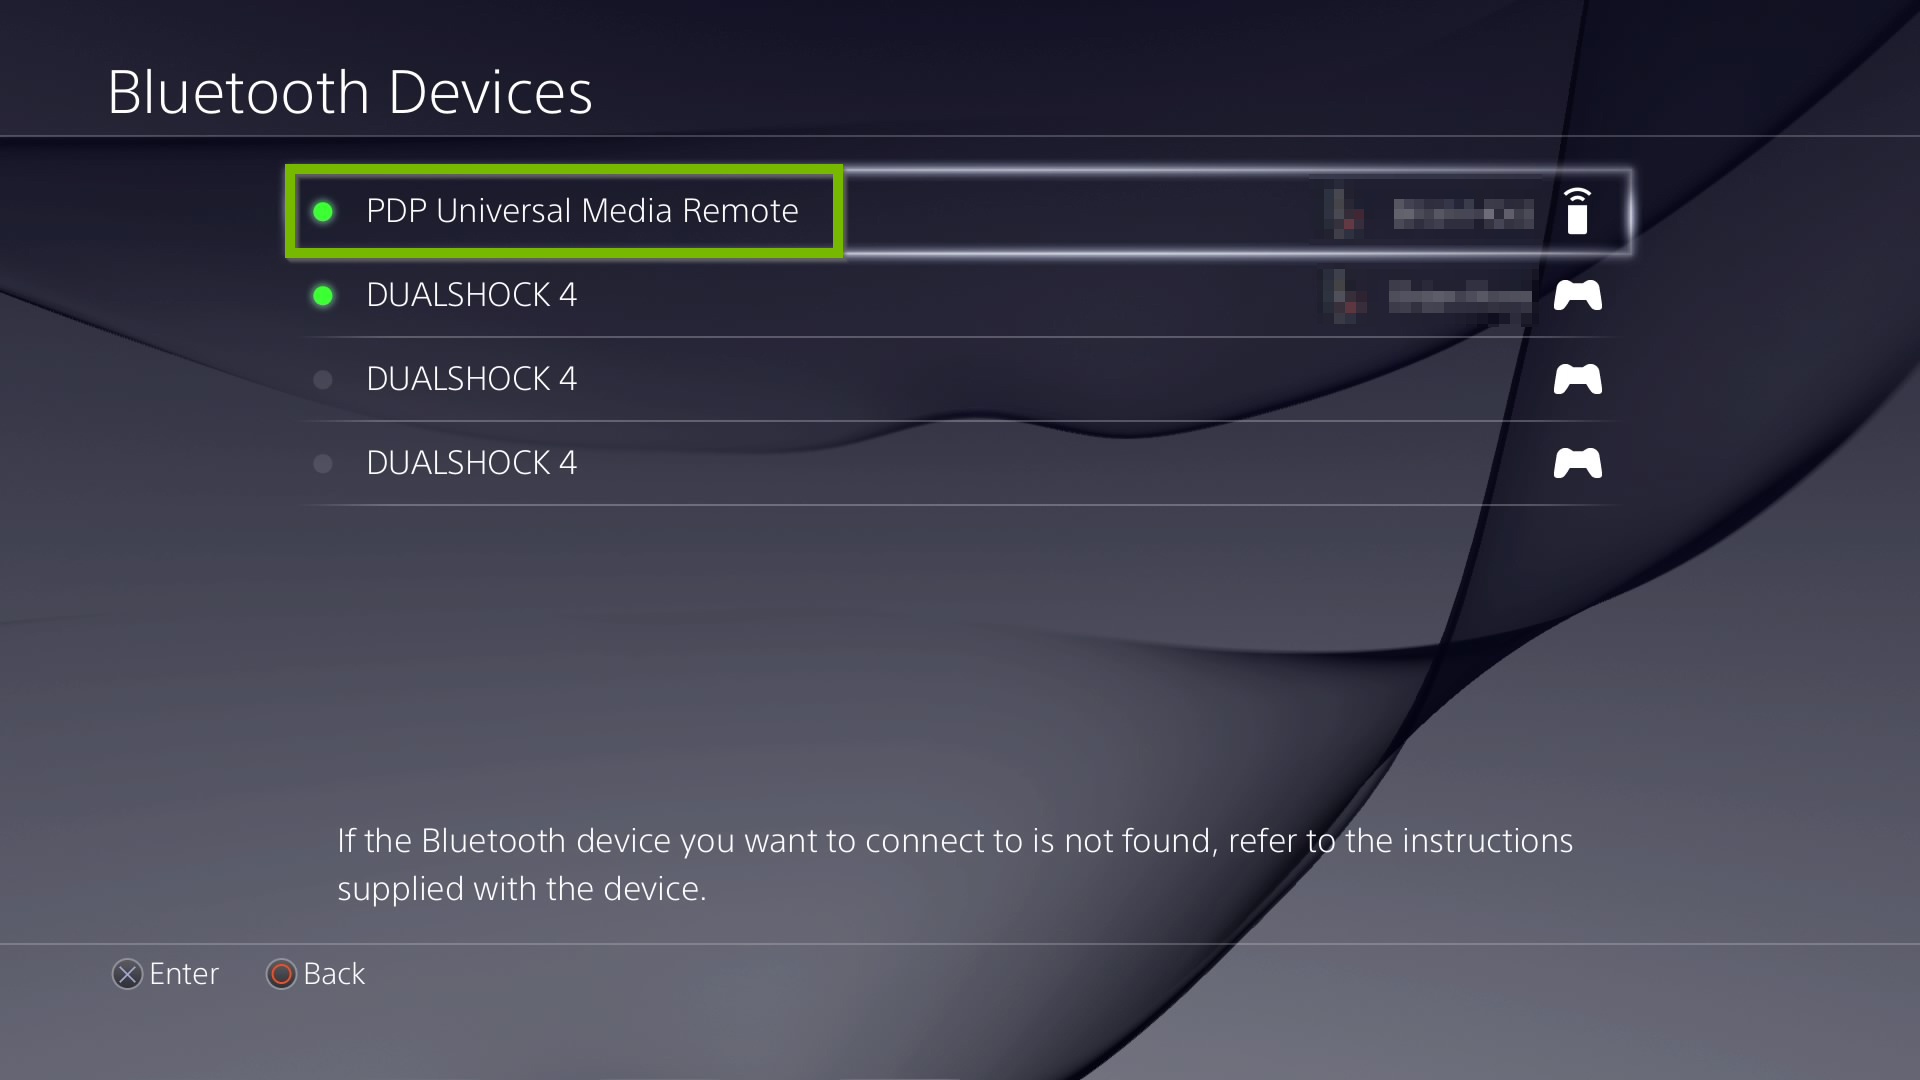 Bluetooth devices list with PDP Media Remote selected. Screenshot.